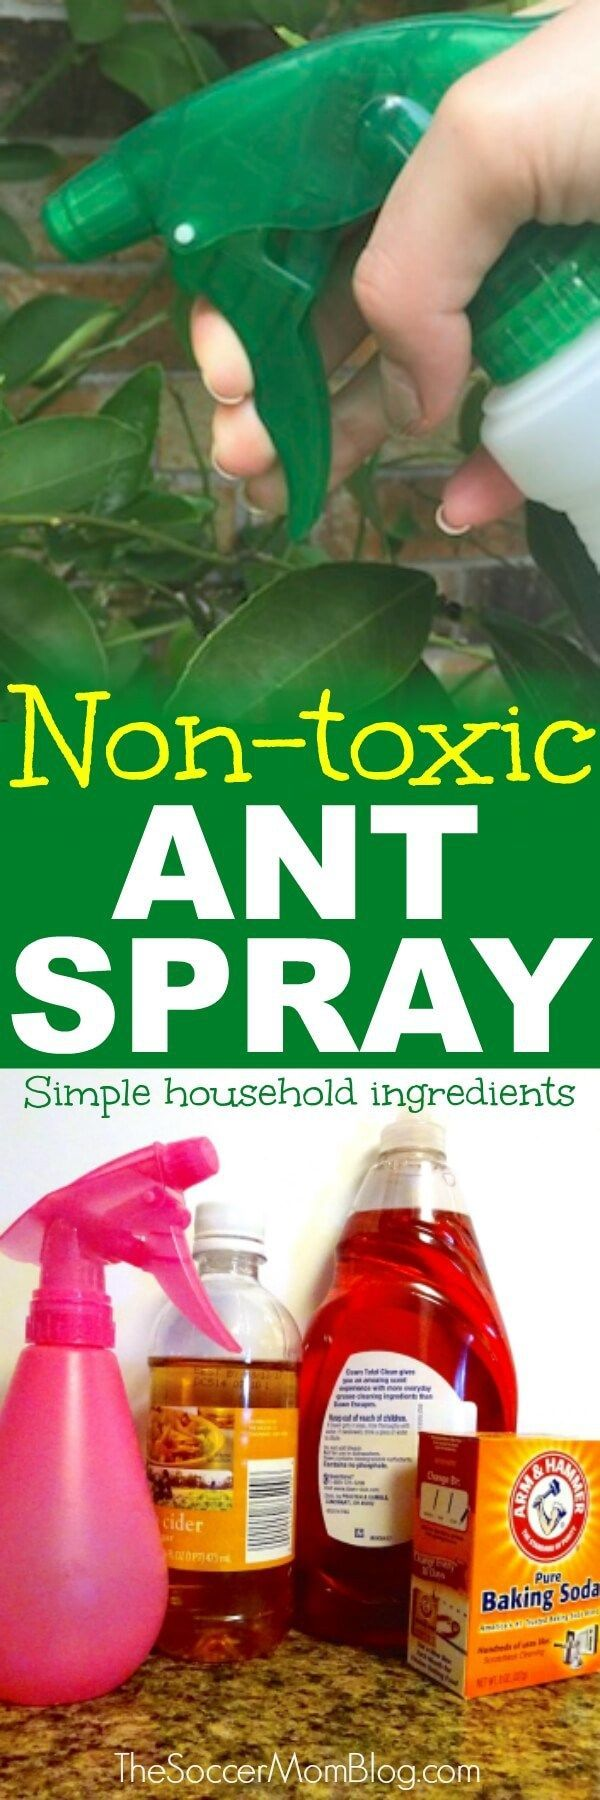 Rid of Pesky Ants for GOOD with These 3 Household Ingredients Forget harsh chemicals! This DIY natural ant repellent spray is safe, easy, cheap, and IT WORKS! Safe for use around children and pets.Forget harsh chemicals! This DIY natural ant repellent spray is safe, easy, cheap, and IT WORKS! Safe for use around children and pets.